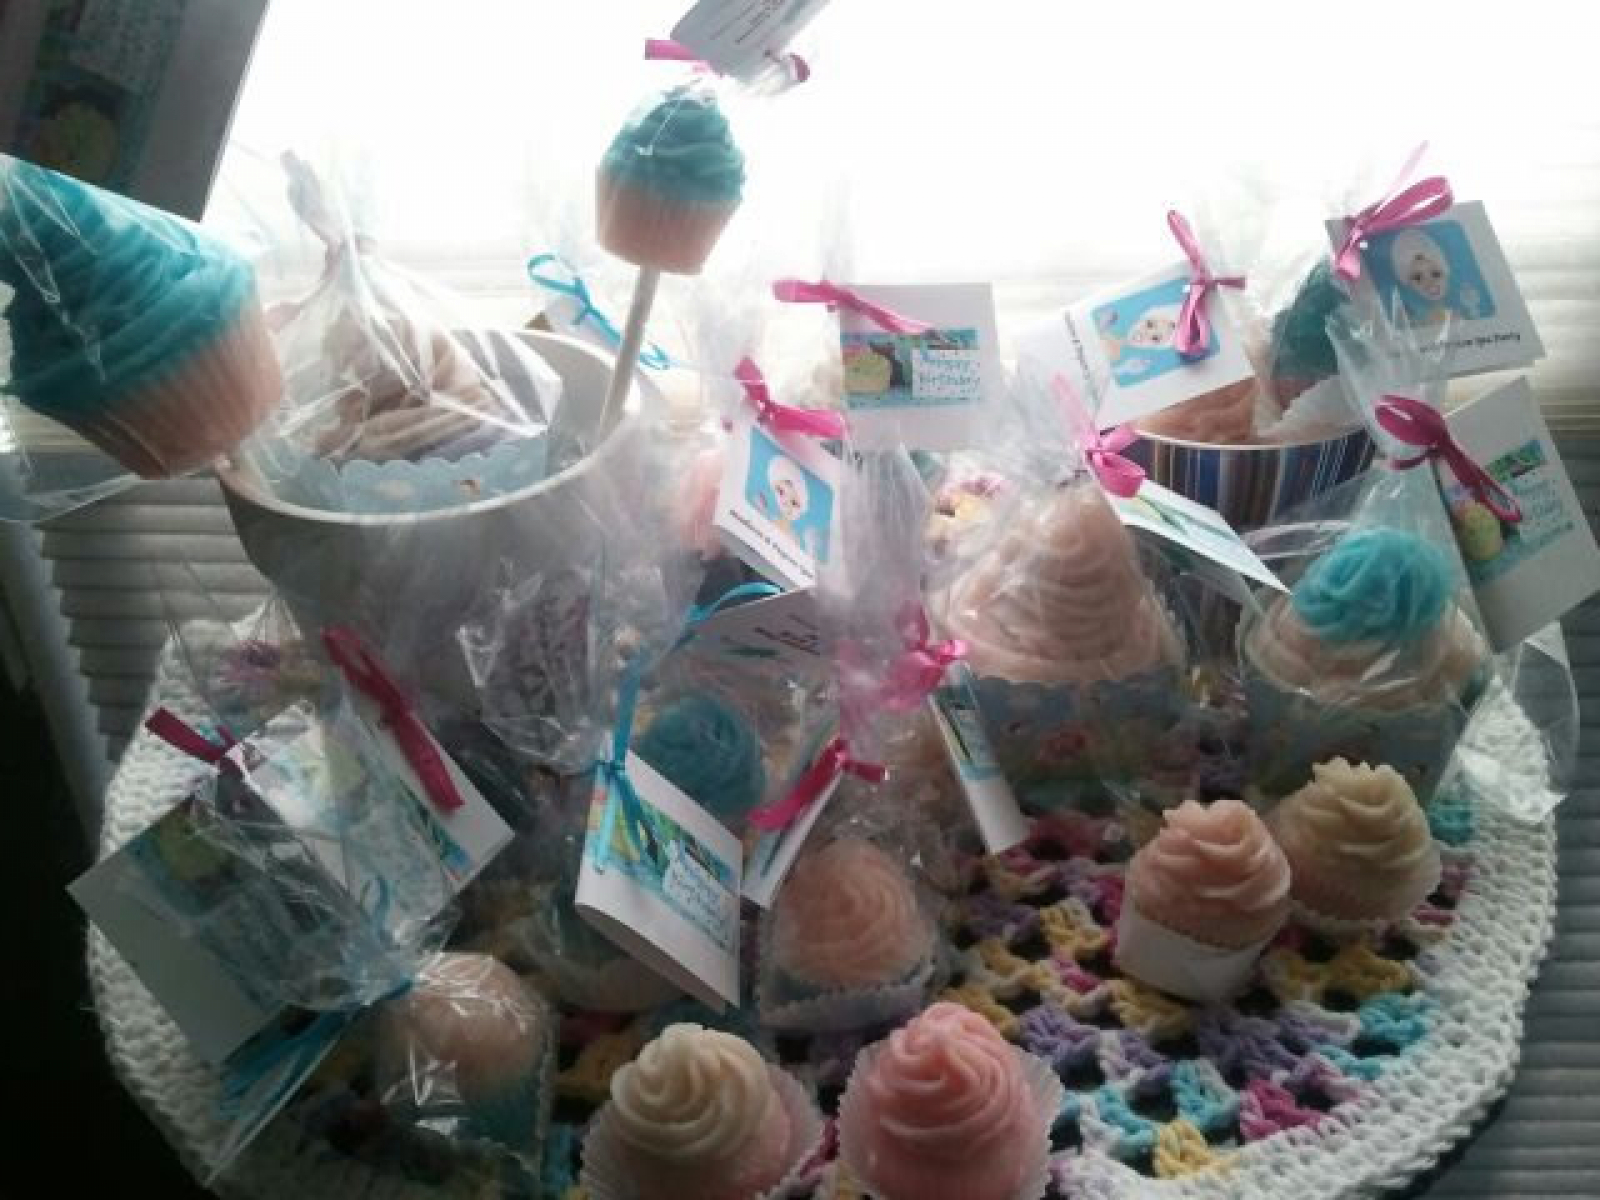 1 Cupcake Soap Shea Butter And Goats Milk Small 125 Oz You Velvy Shower Cream 1liter Licorice Ampamp Sea Previous Next